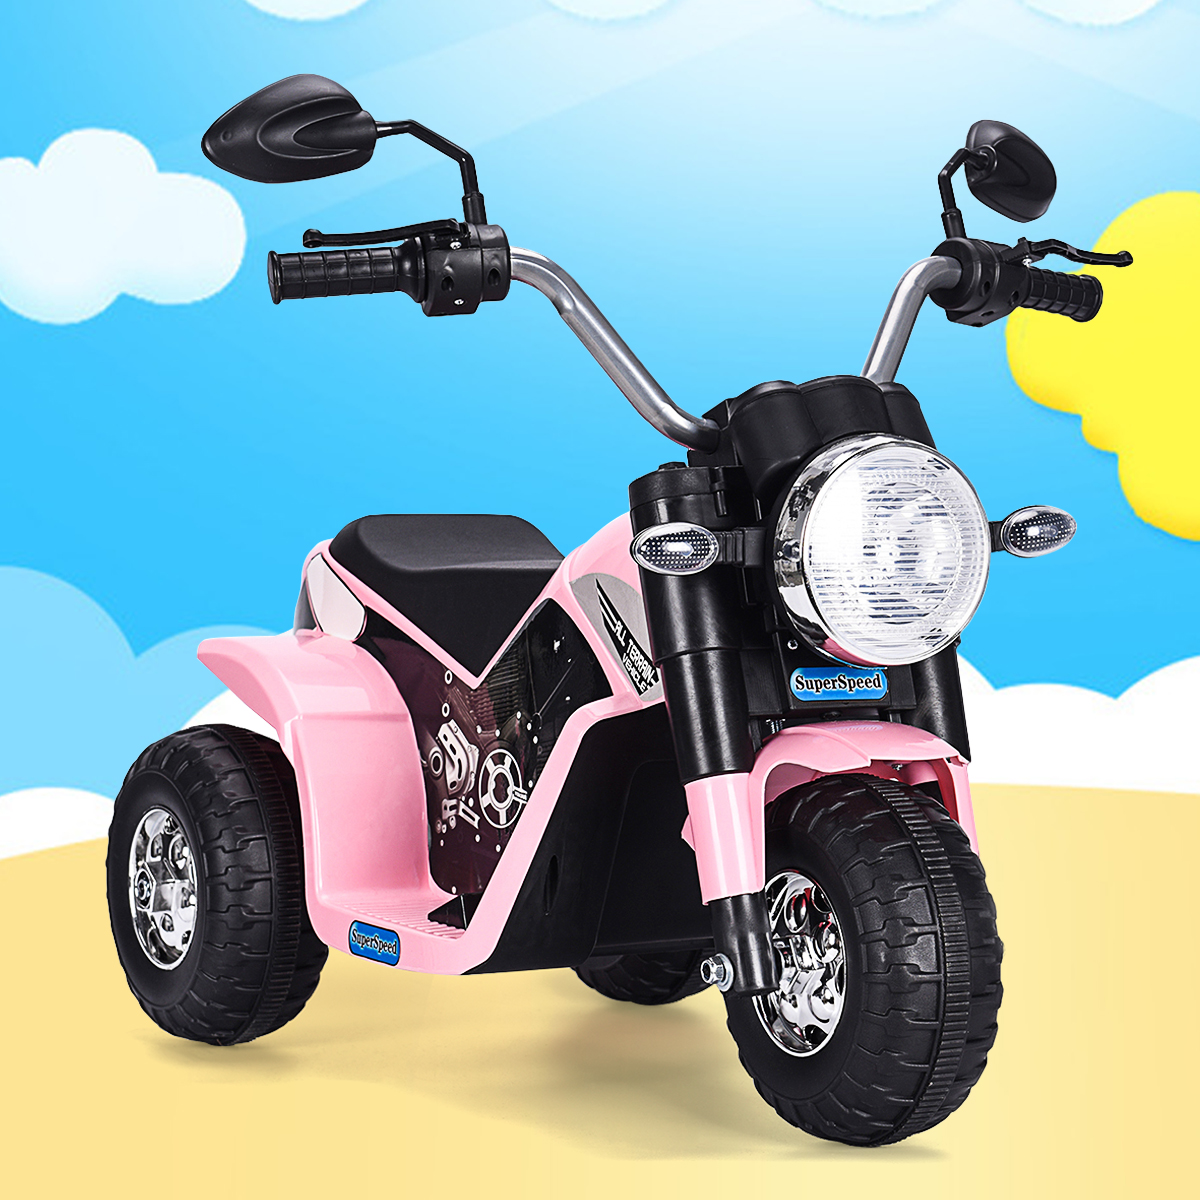 6V Kids Ride On Motorcycle Toy Battery Powered Electric 3 Wheel Bicycle Pink by Jaxpety